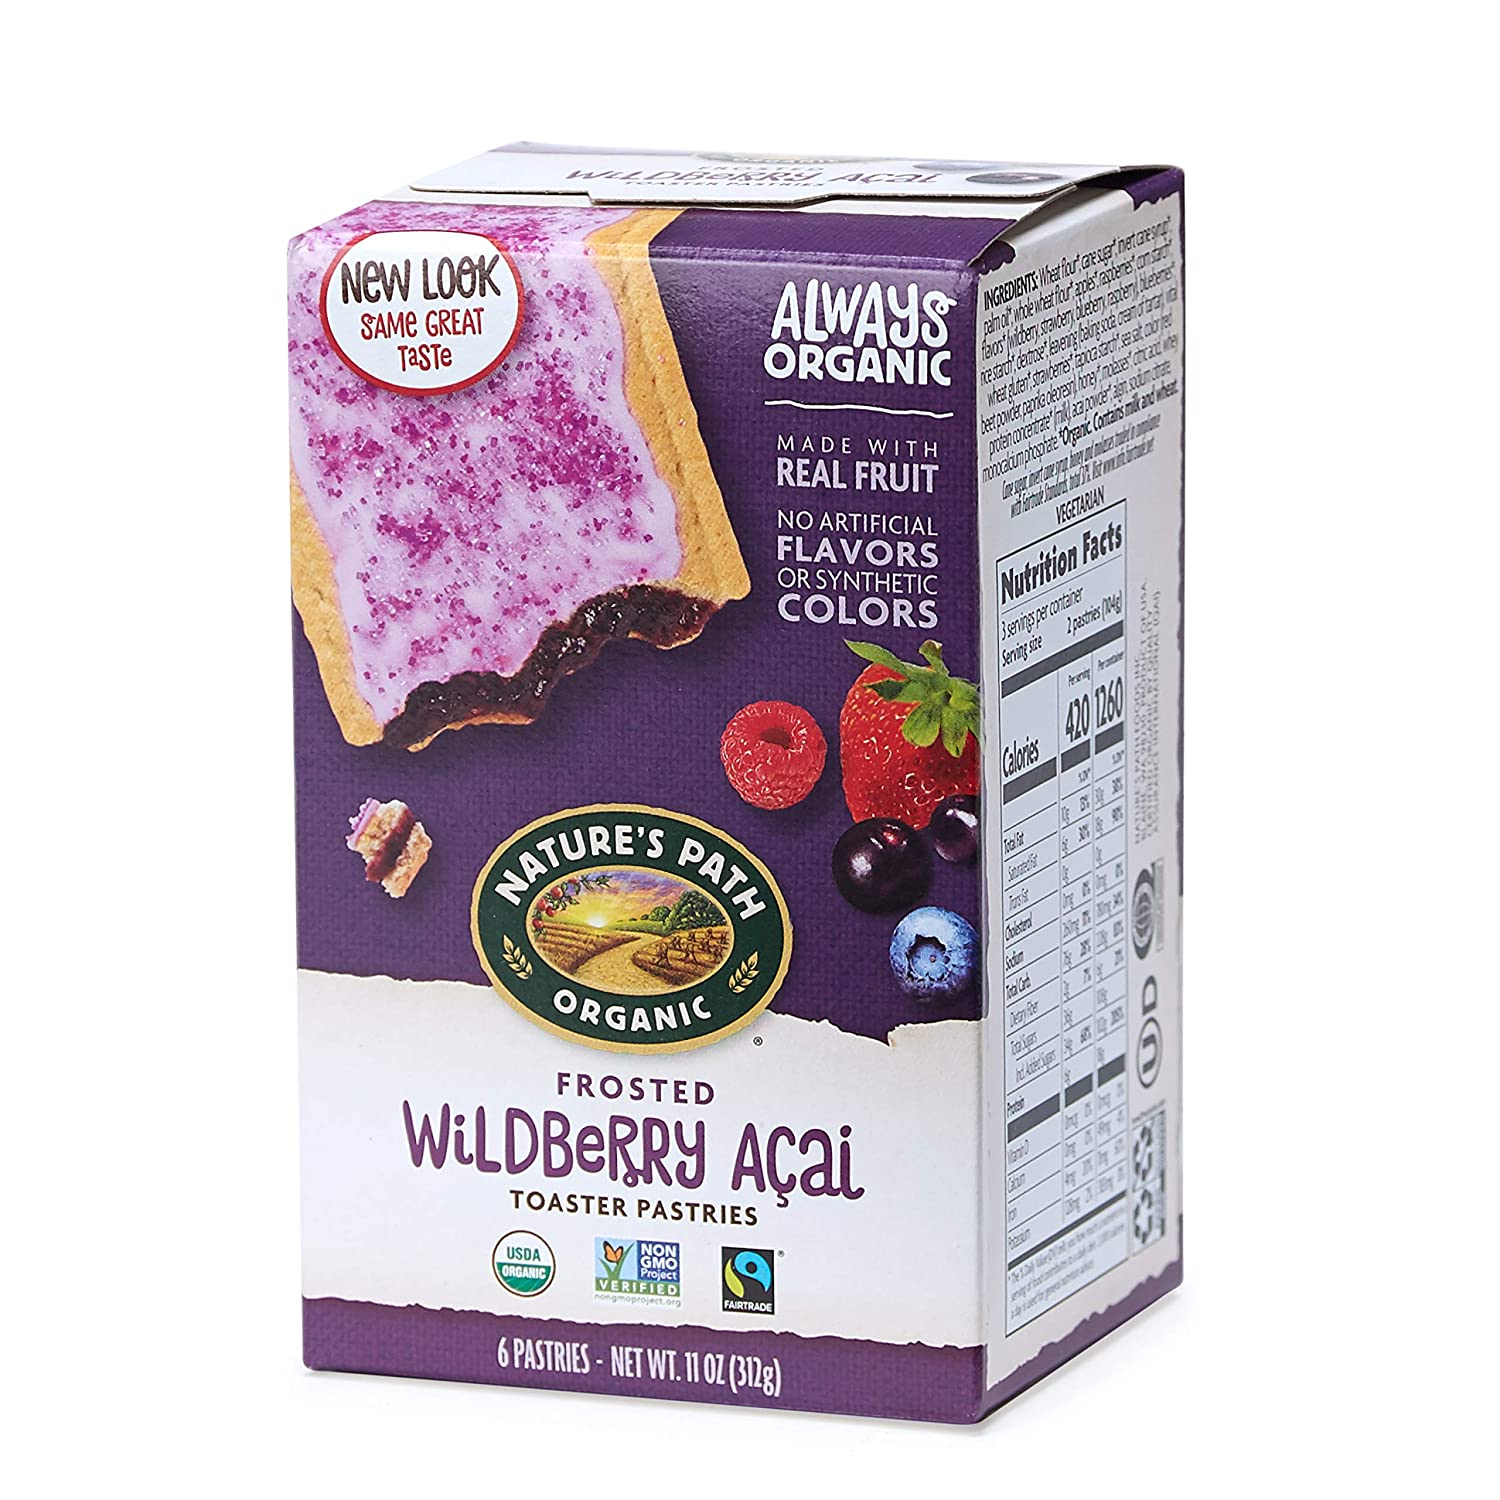 Nature's Path Frosted Wildberry Acai Toaster Pastries, Healthy, Organic, 11-Ounce Box (Pack of 12)